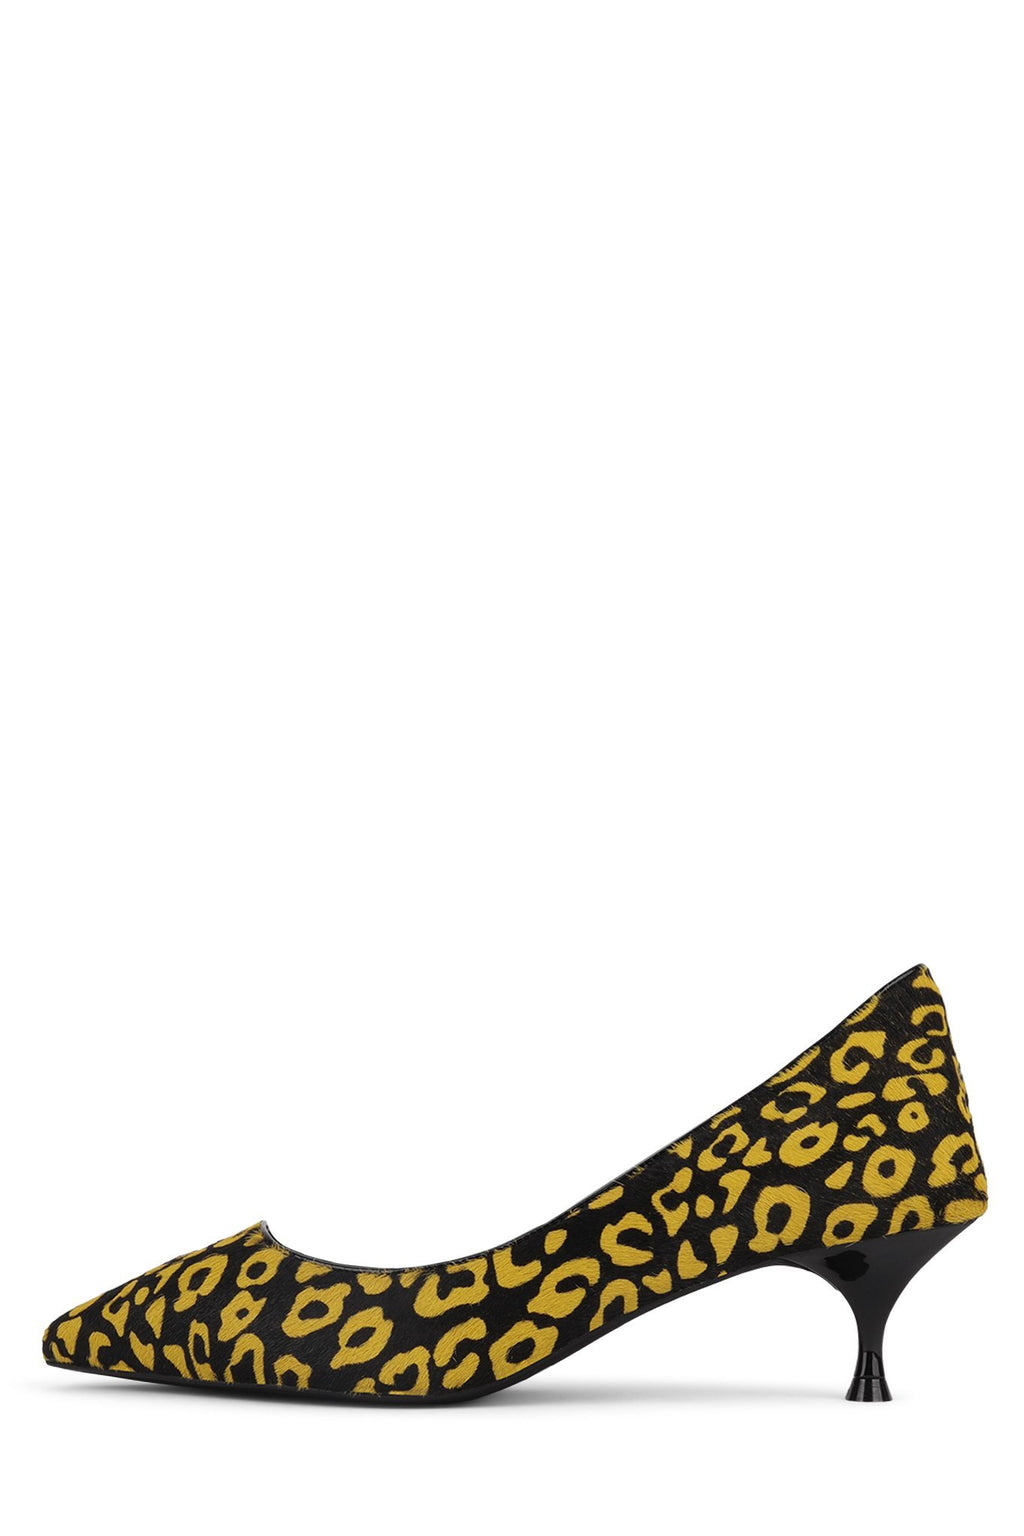 MARVEL-2F Pump ST Yellow Black Cheetah 6